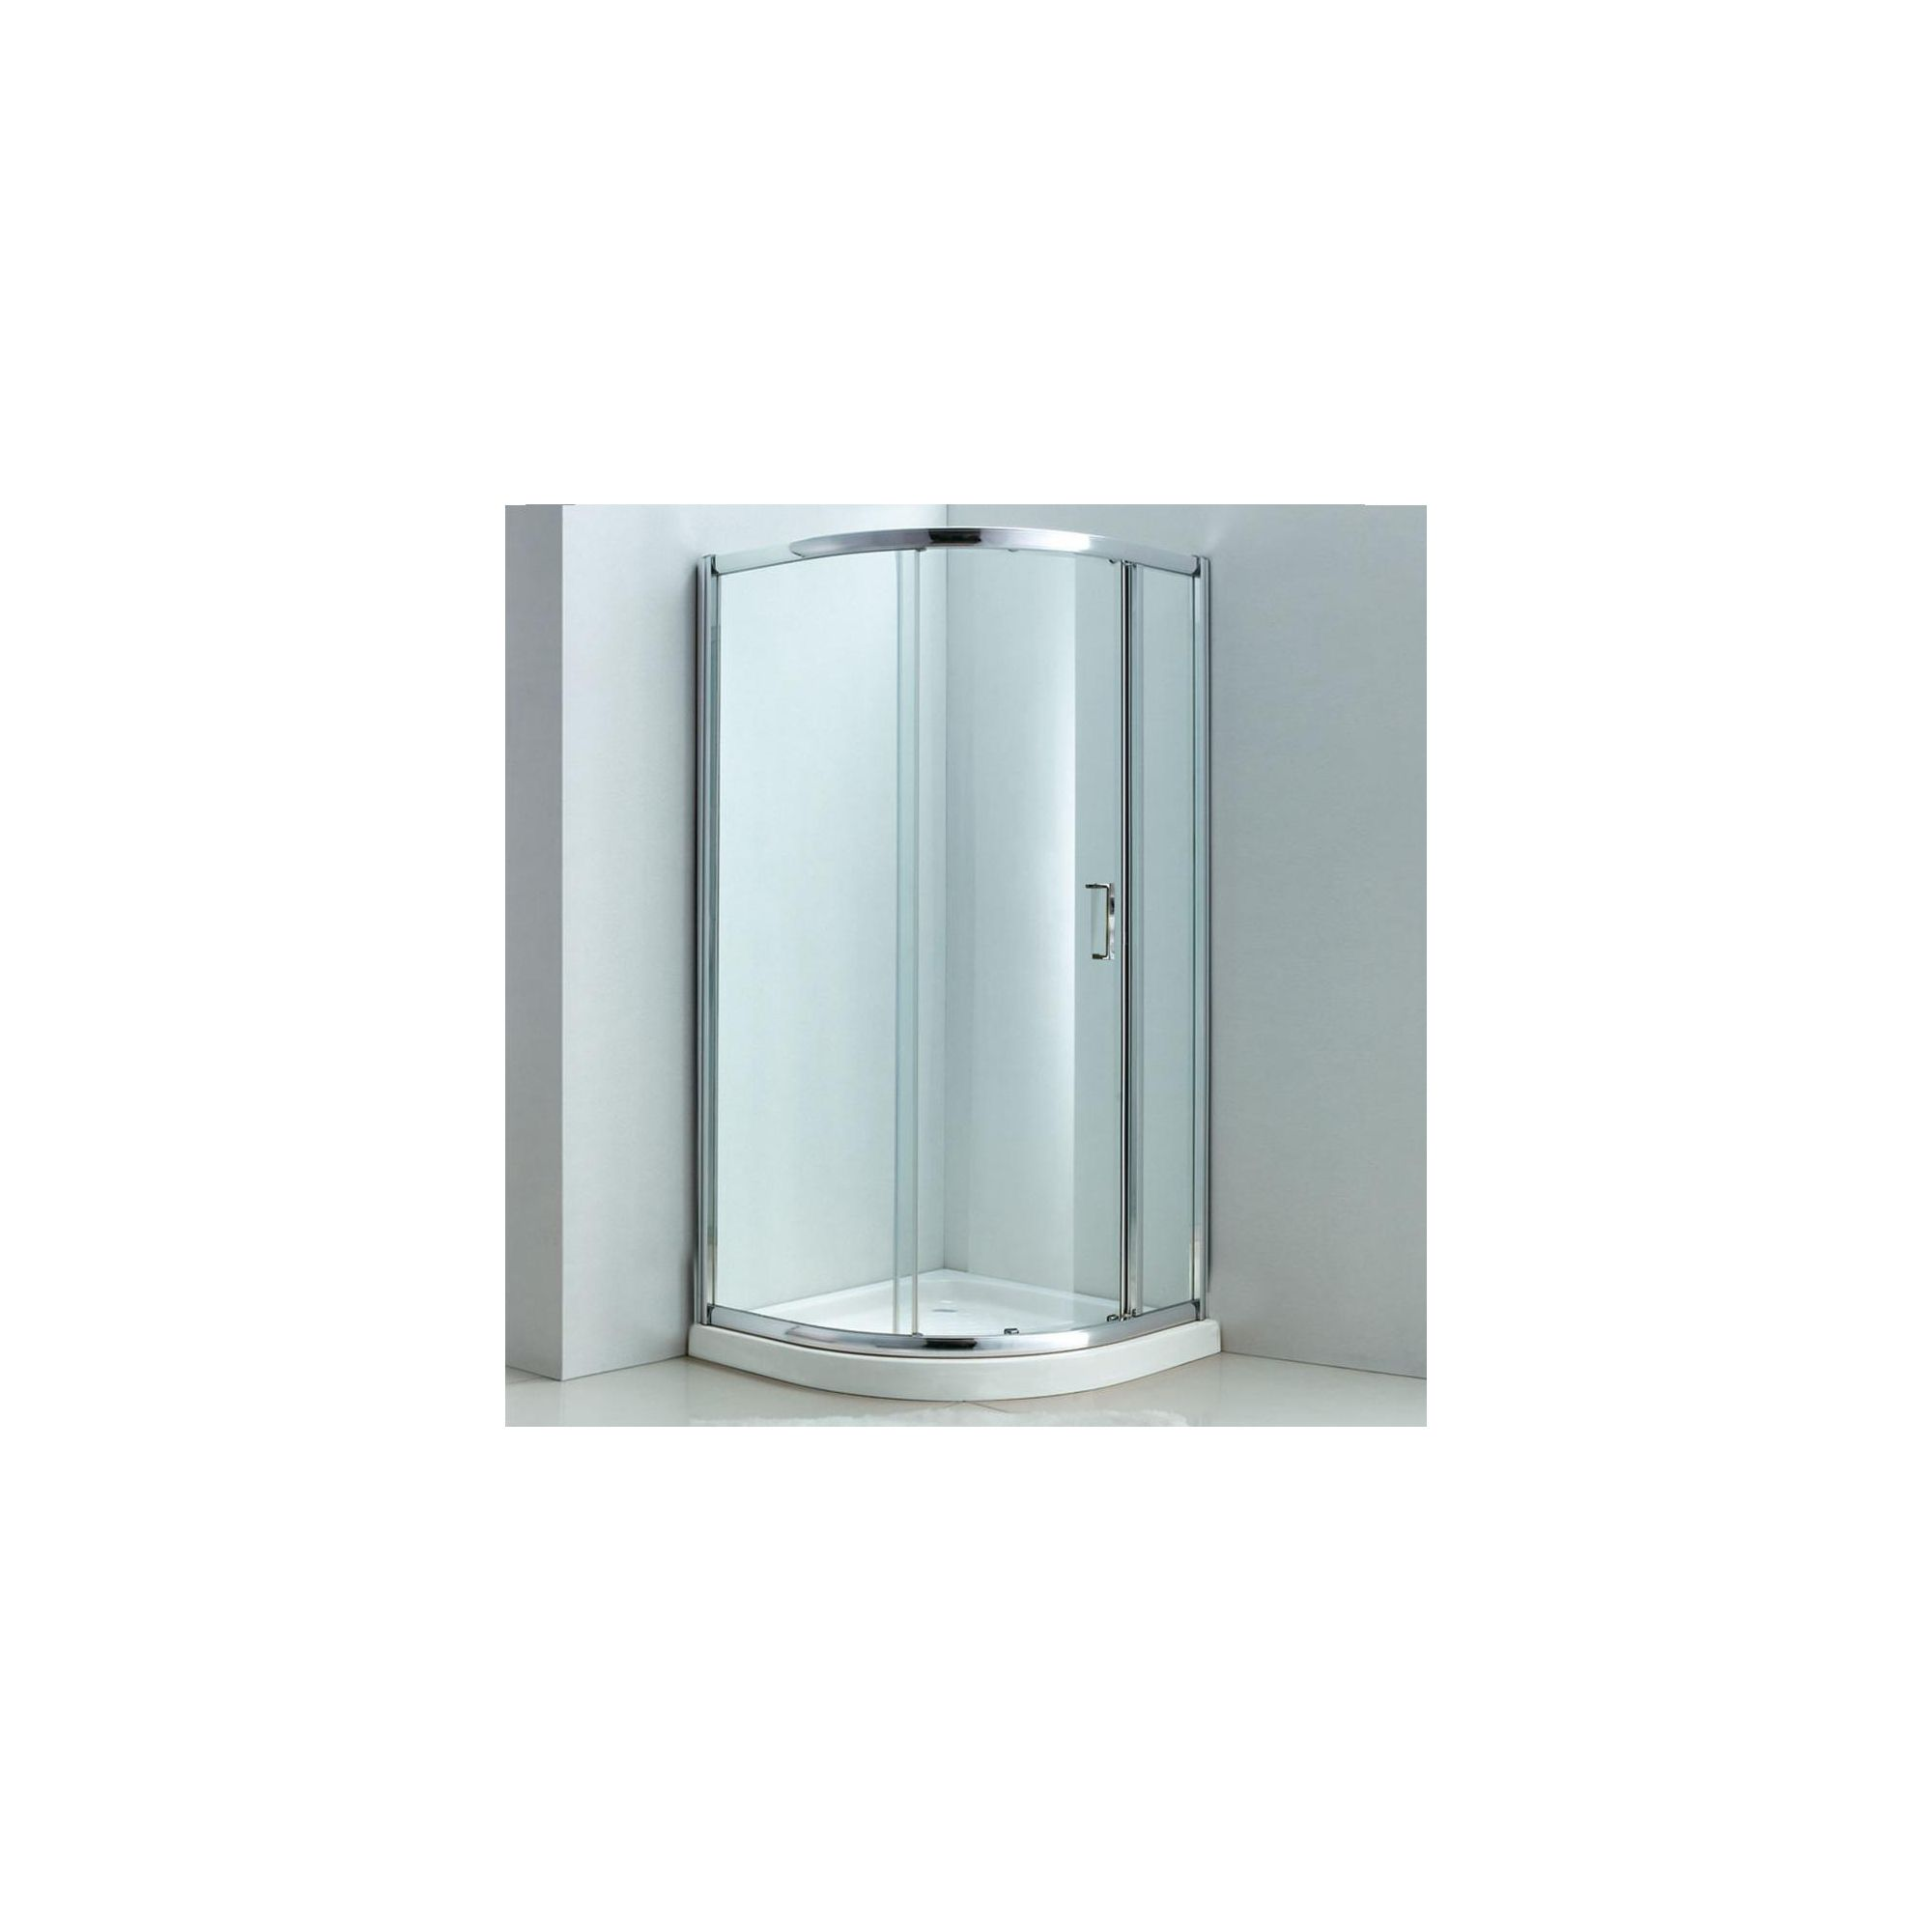 Duchy Style Single Quadrant Door Shower Enclosure, 1000mm x 1000mm, 6mm Glass, Low Profile Tray at Tescos Direct